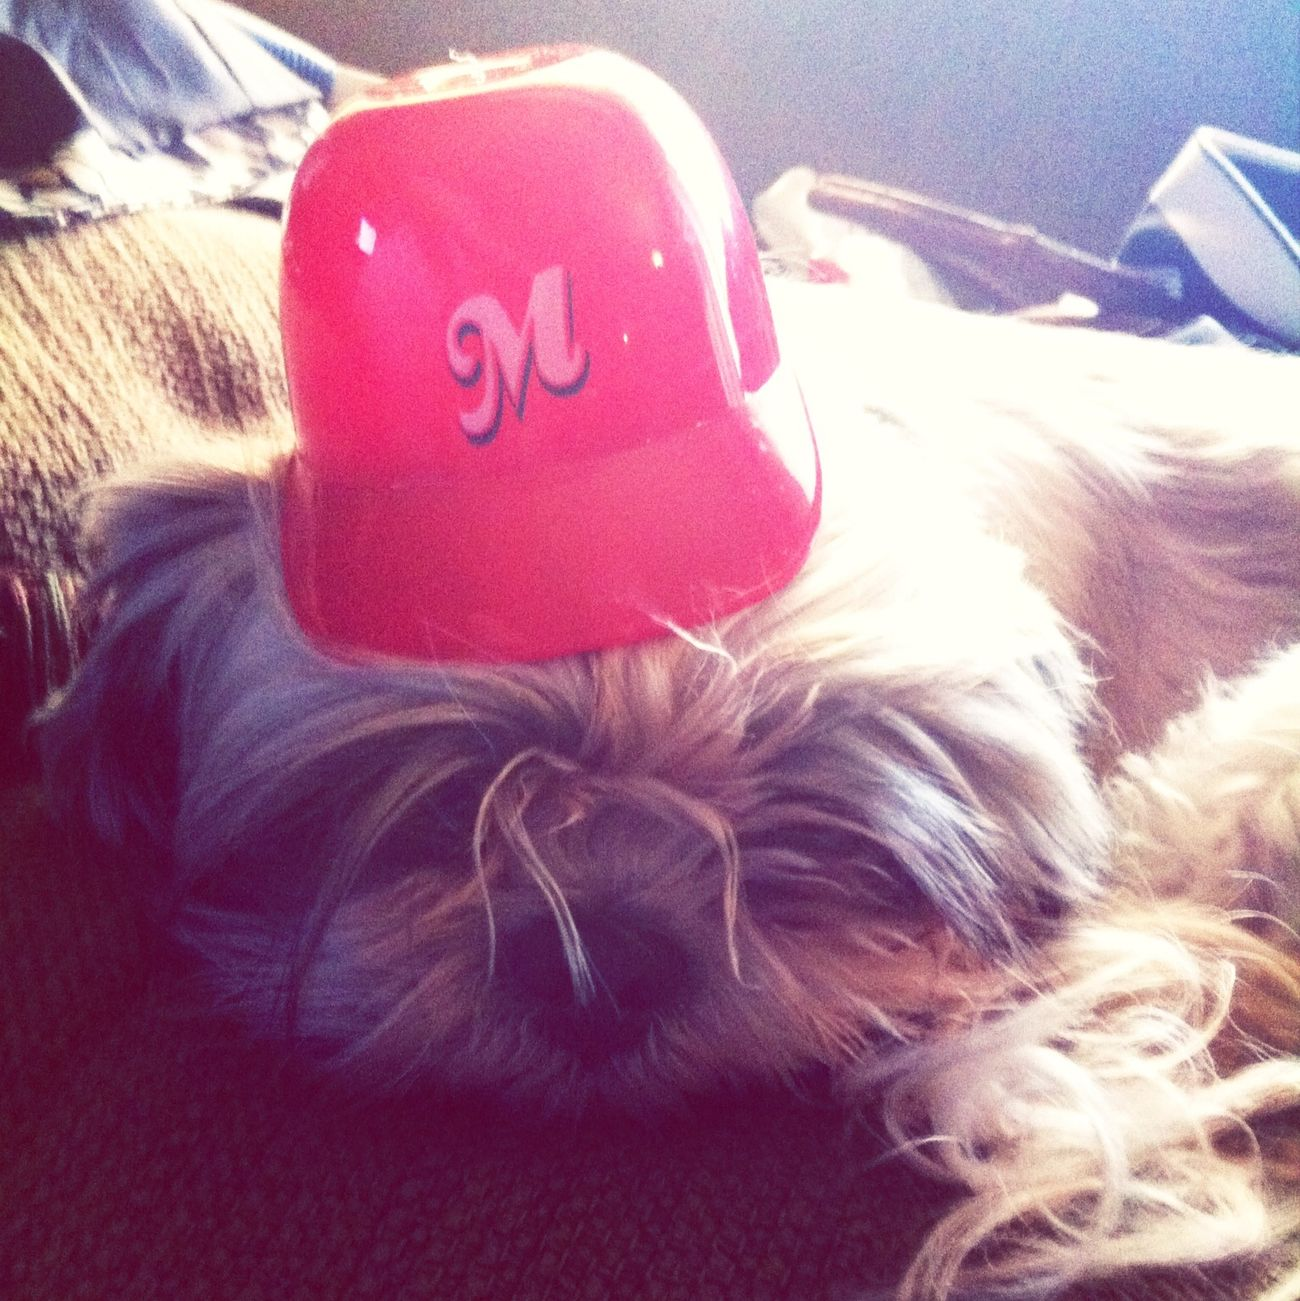 Memphis RedBirds My Dog Is Cooler Than Your Kids Shih Tzu Good Dog Rolo is sad because the RedBirds lost in the playoffs.